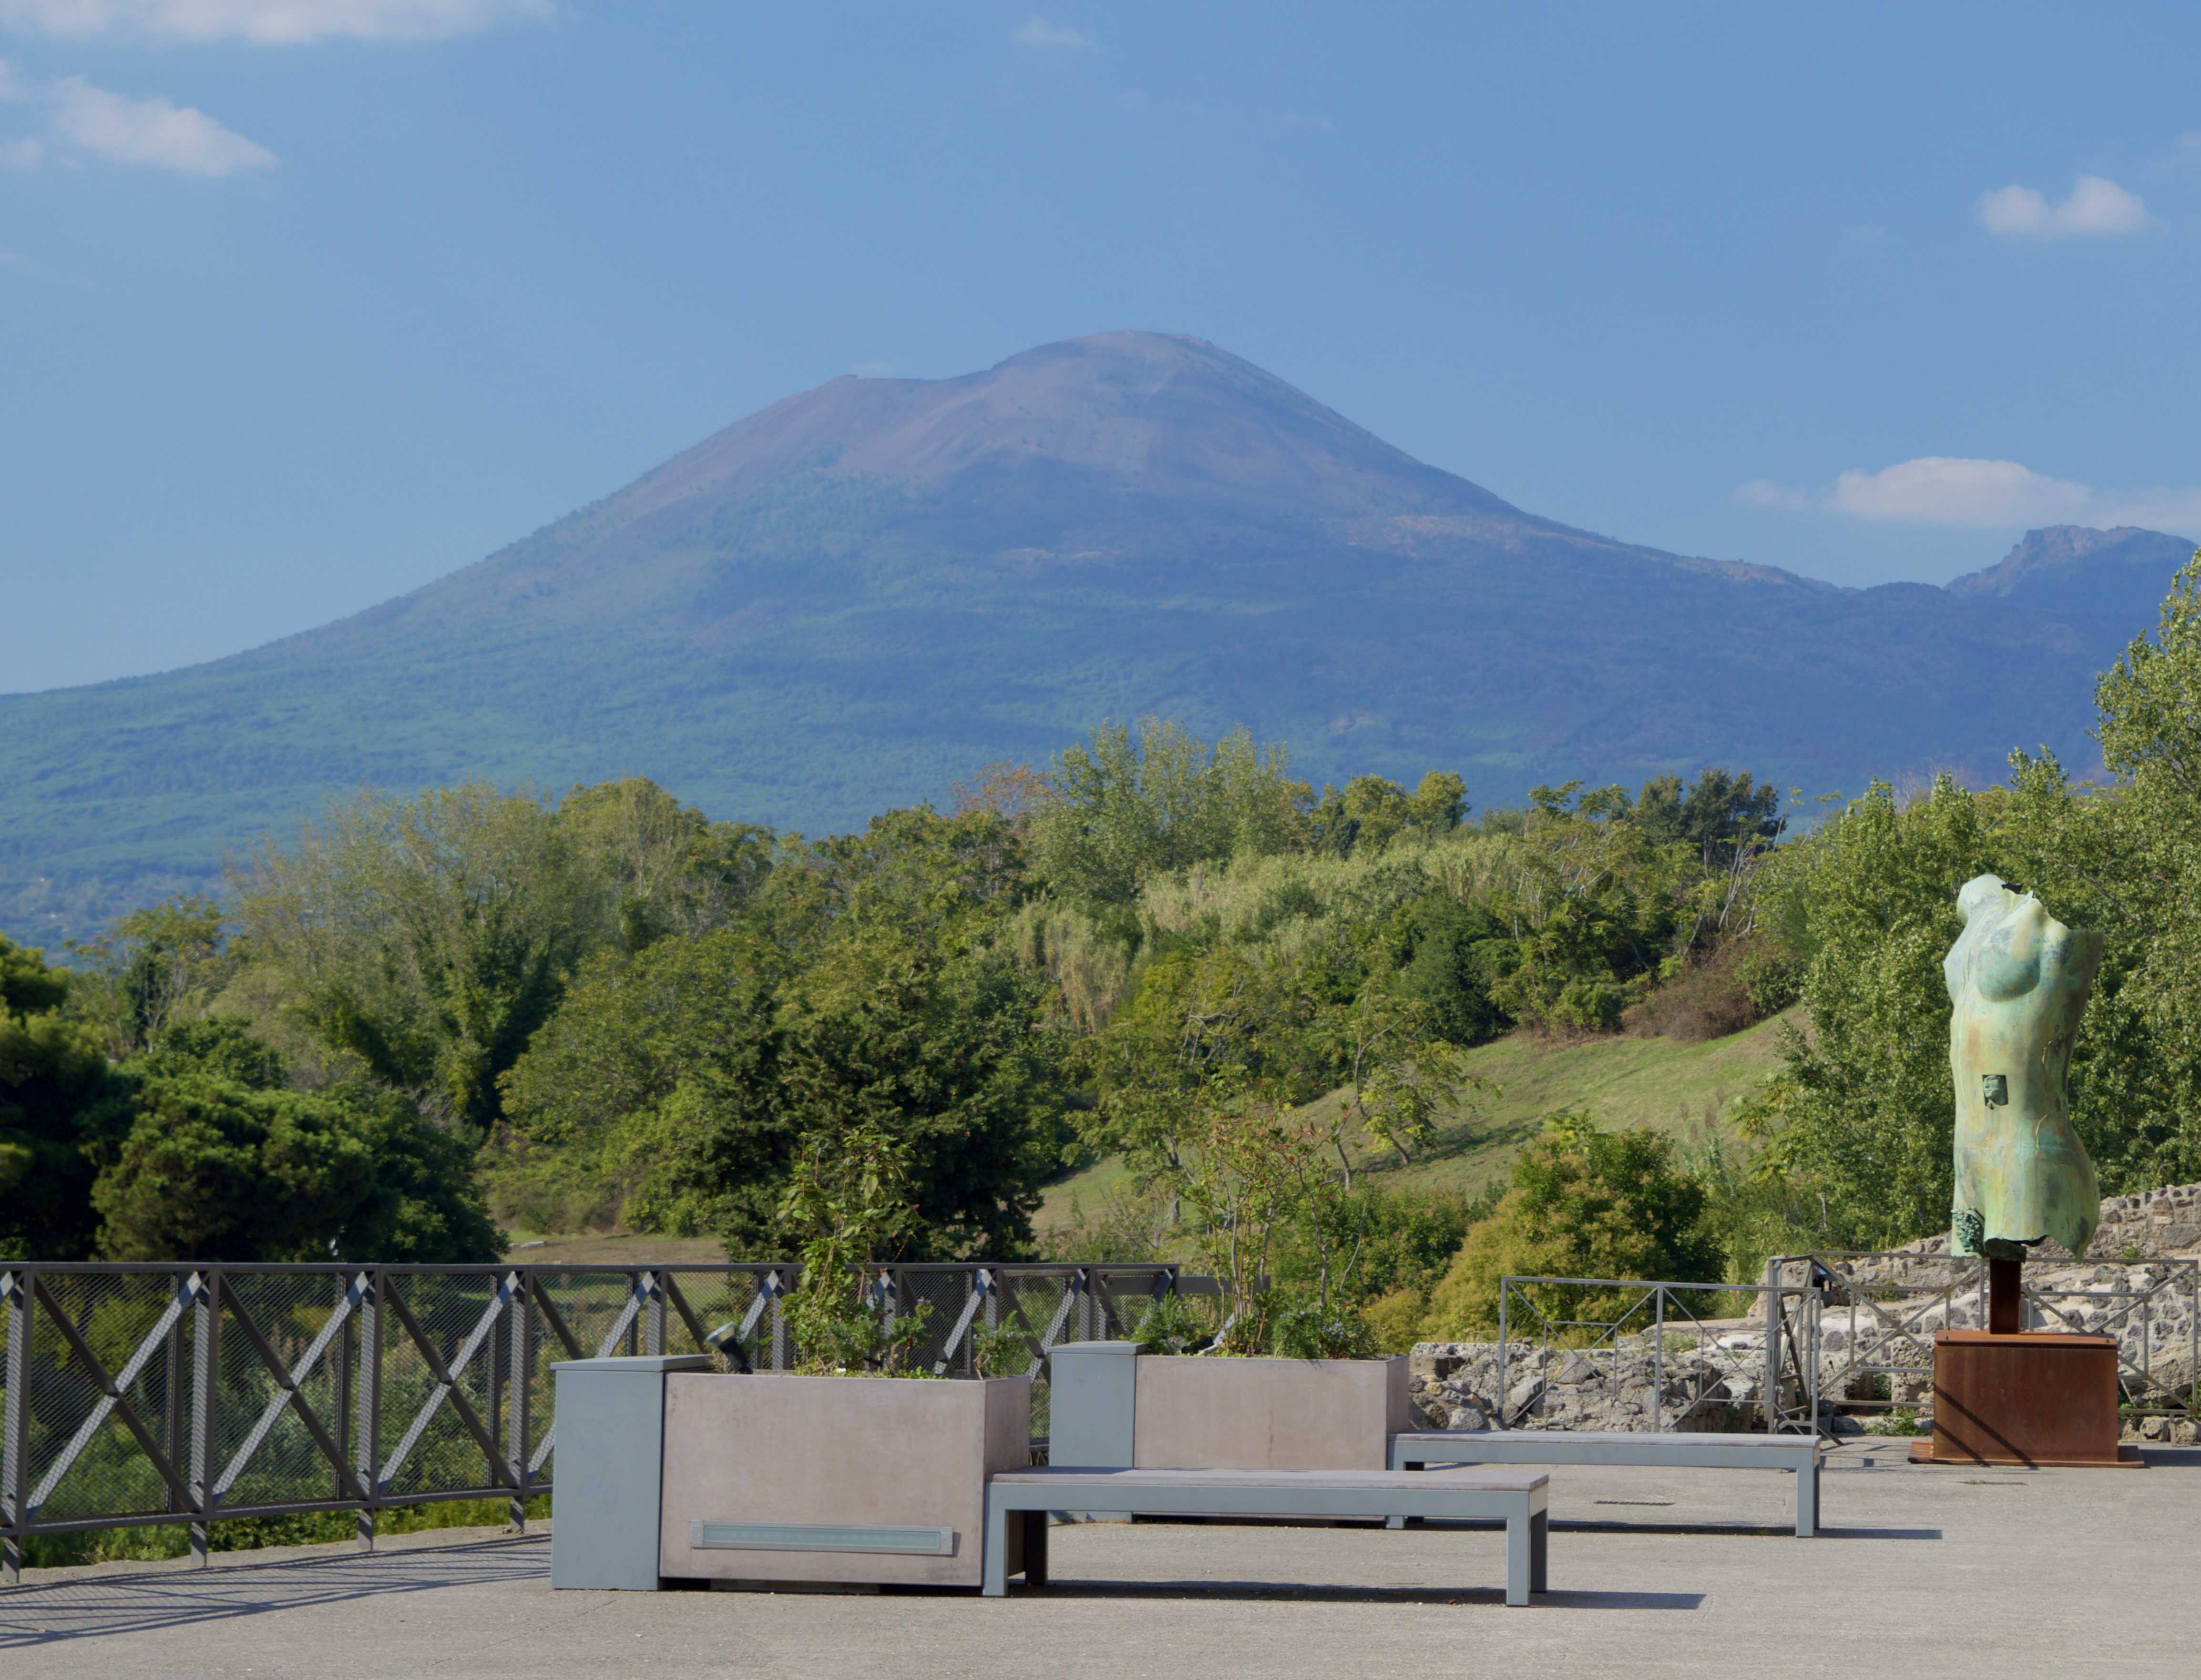 The view of Mount Vesuvius from Pompeii